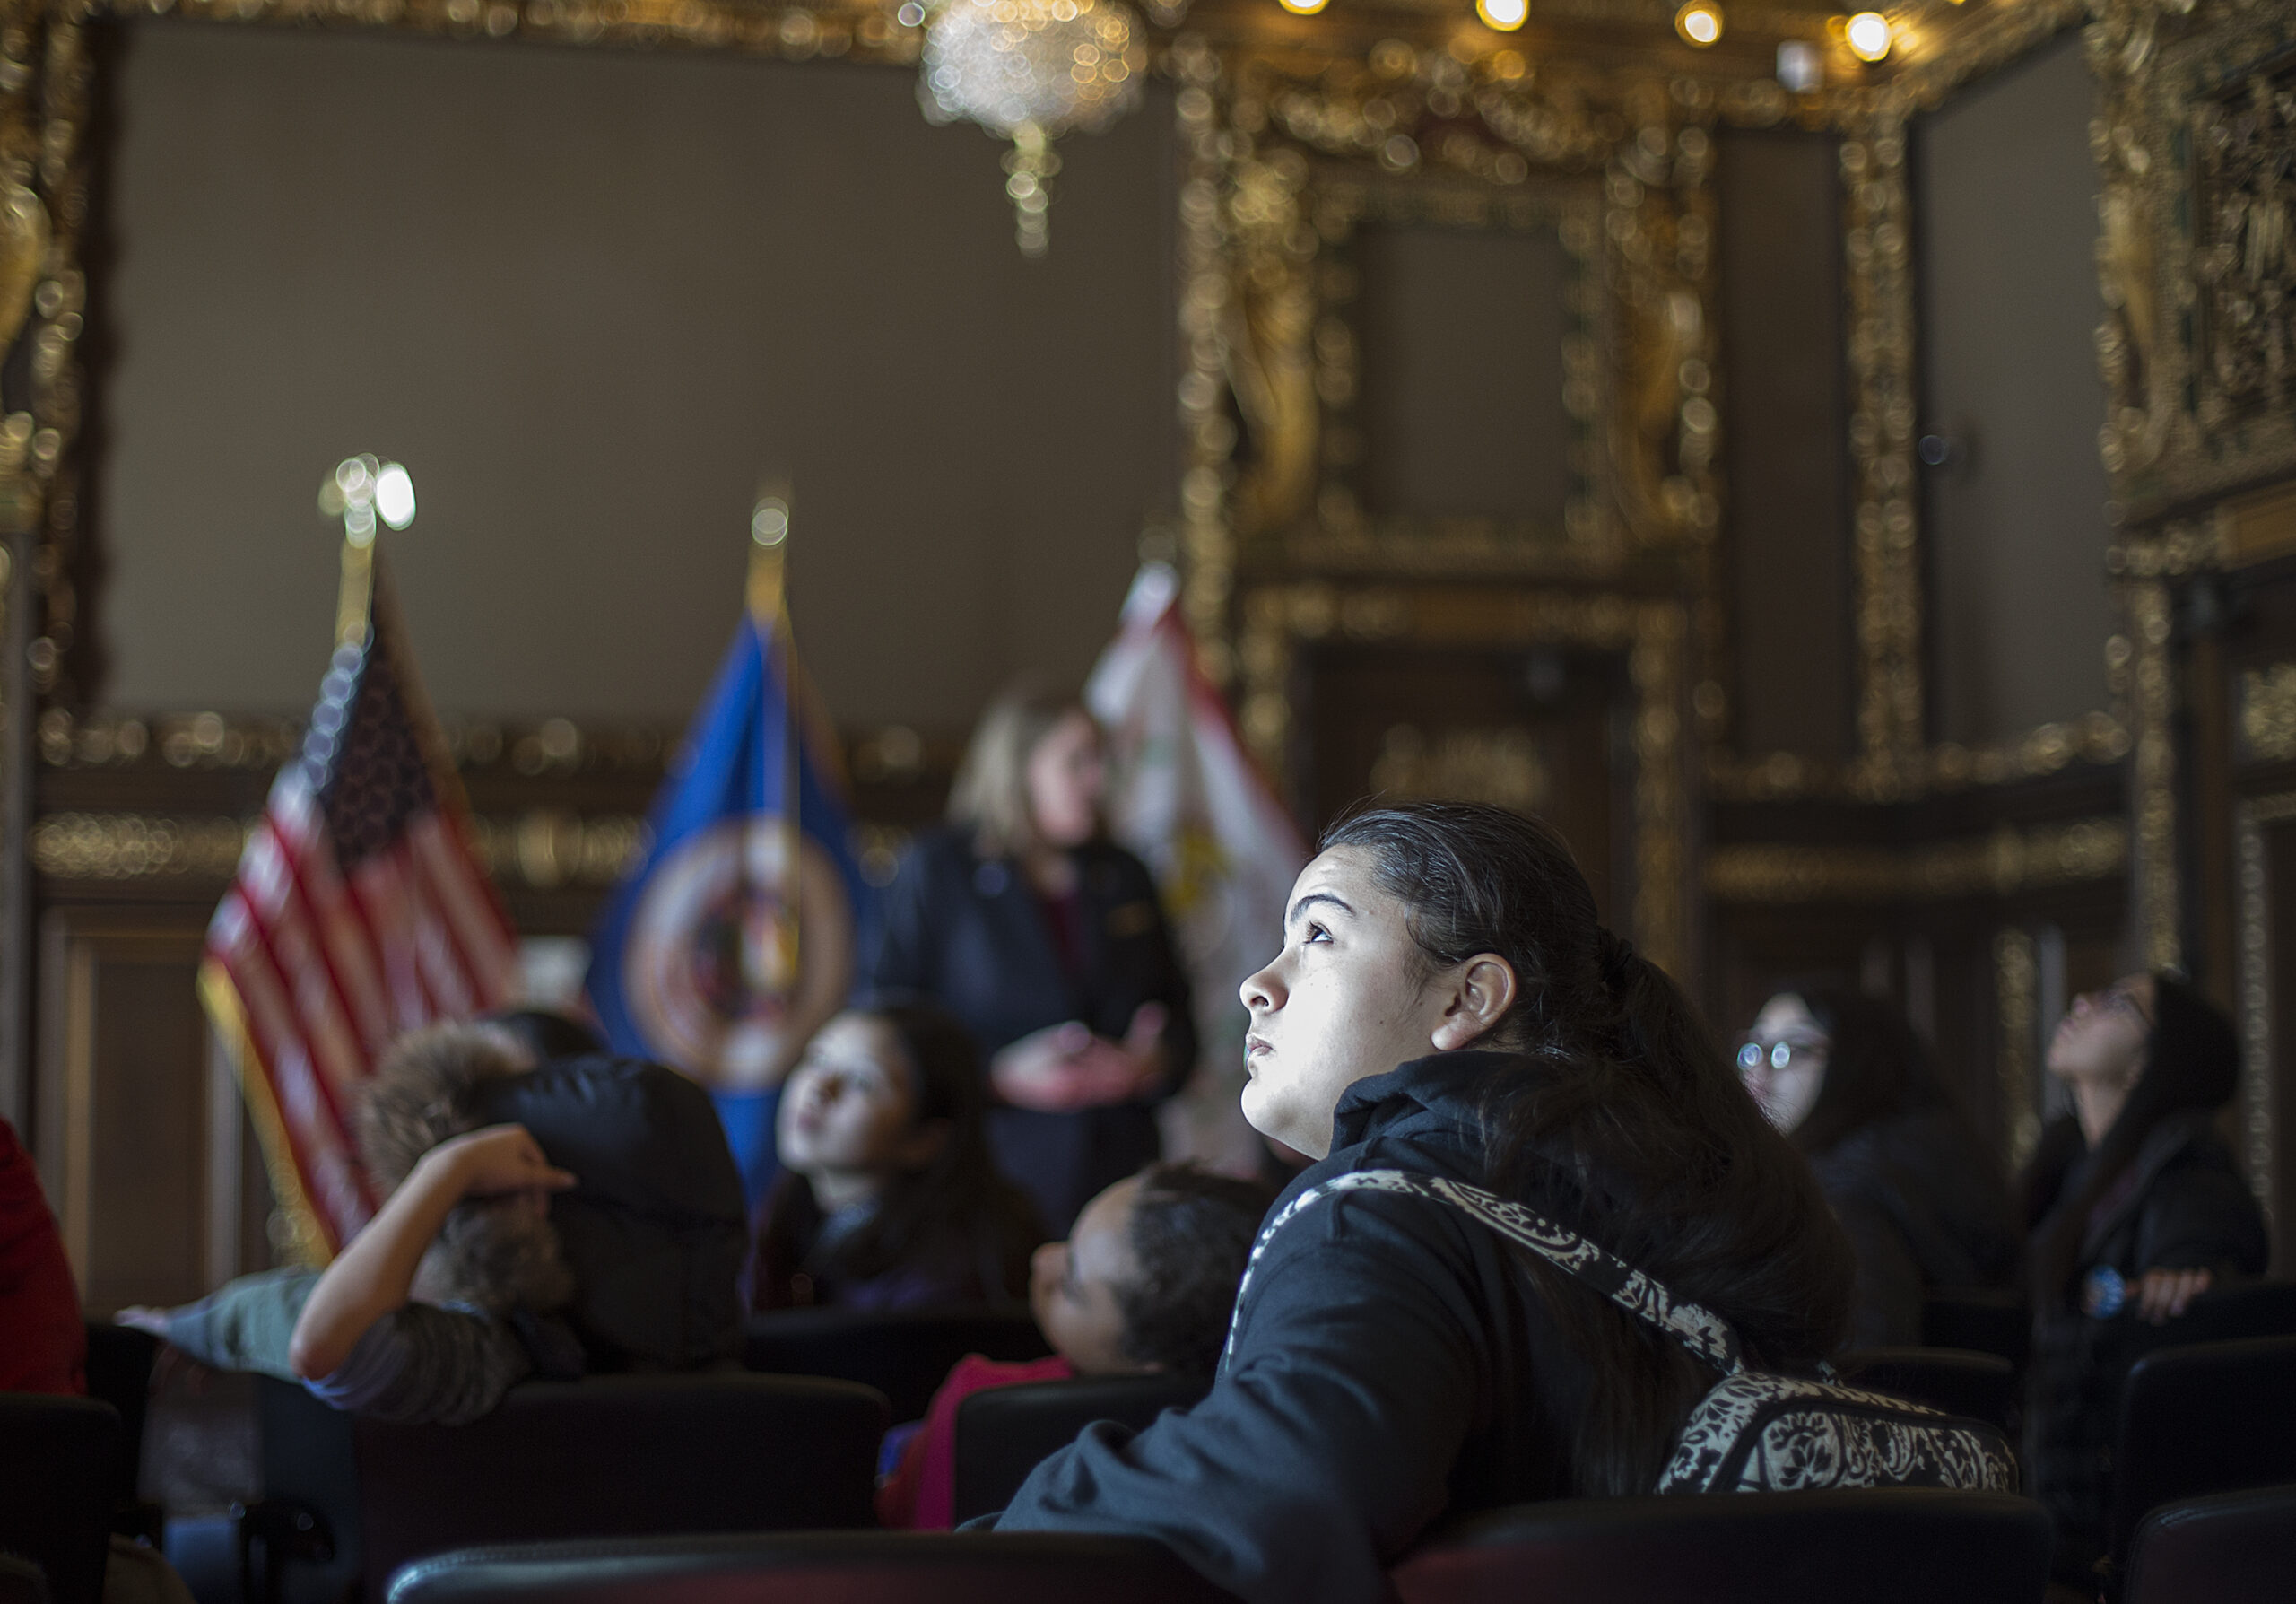 A young person from Waite House attending the State Capitol